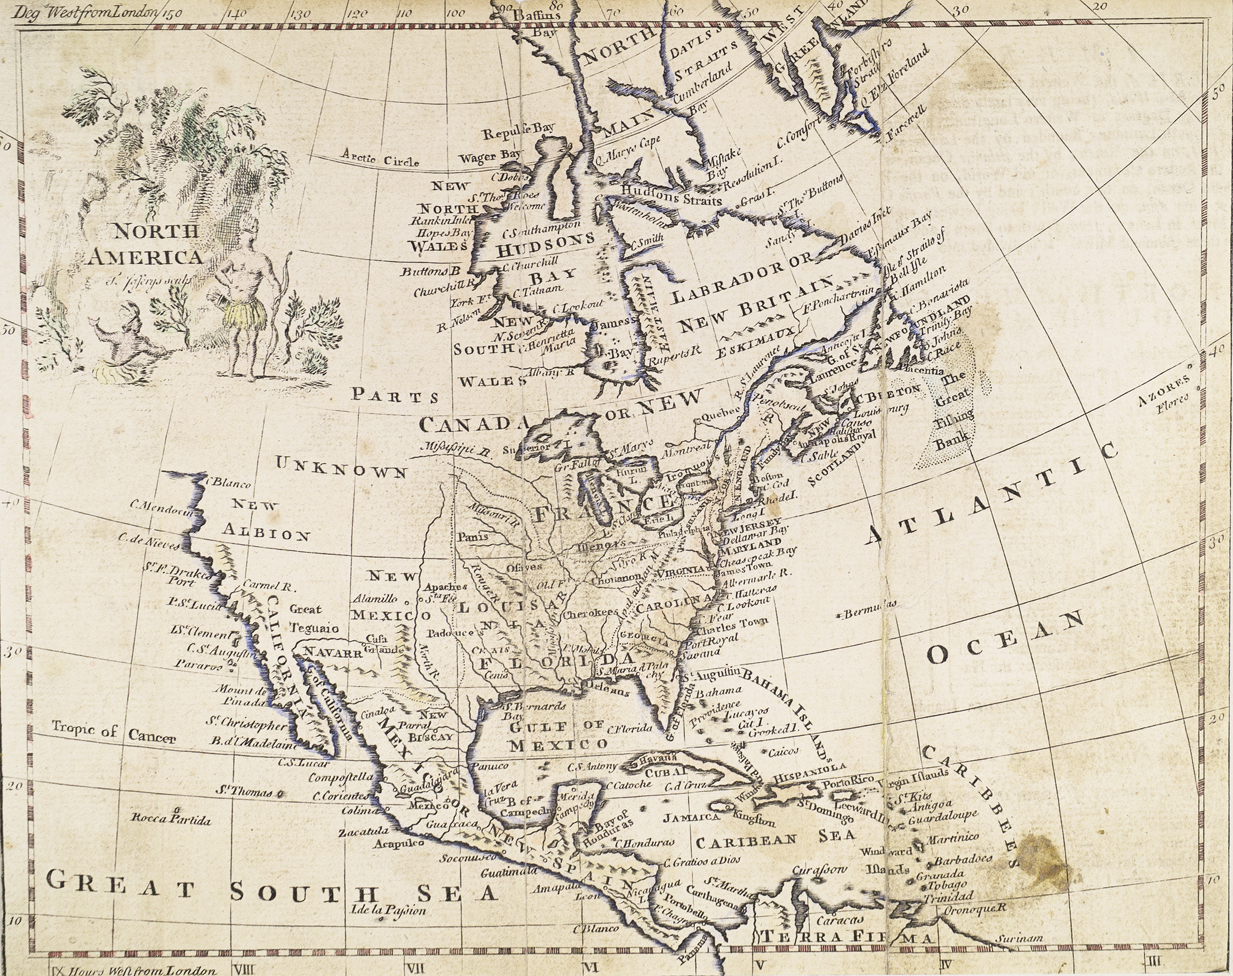 north america essay Wenzheng yu period 6/7 us imperialism: a continuation of past usexpansion american history in the 18th and 19th centuries was marked by persi.